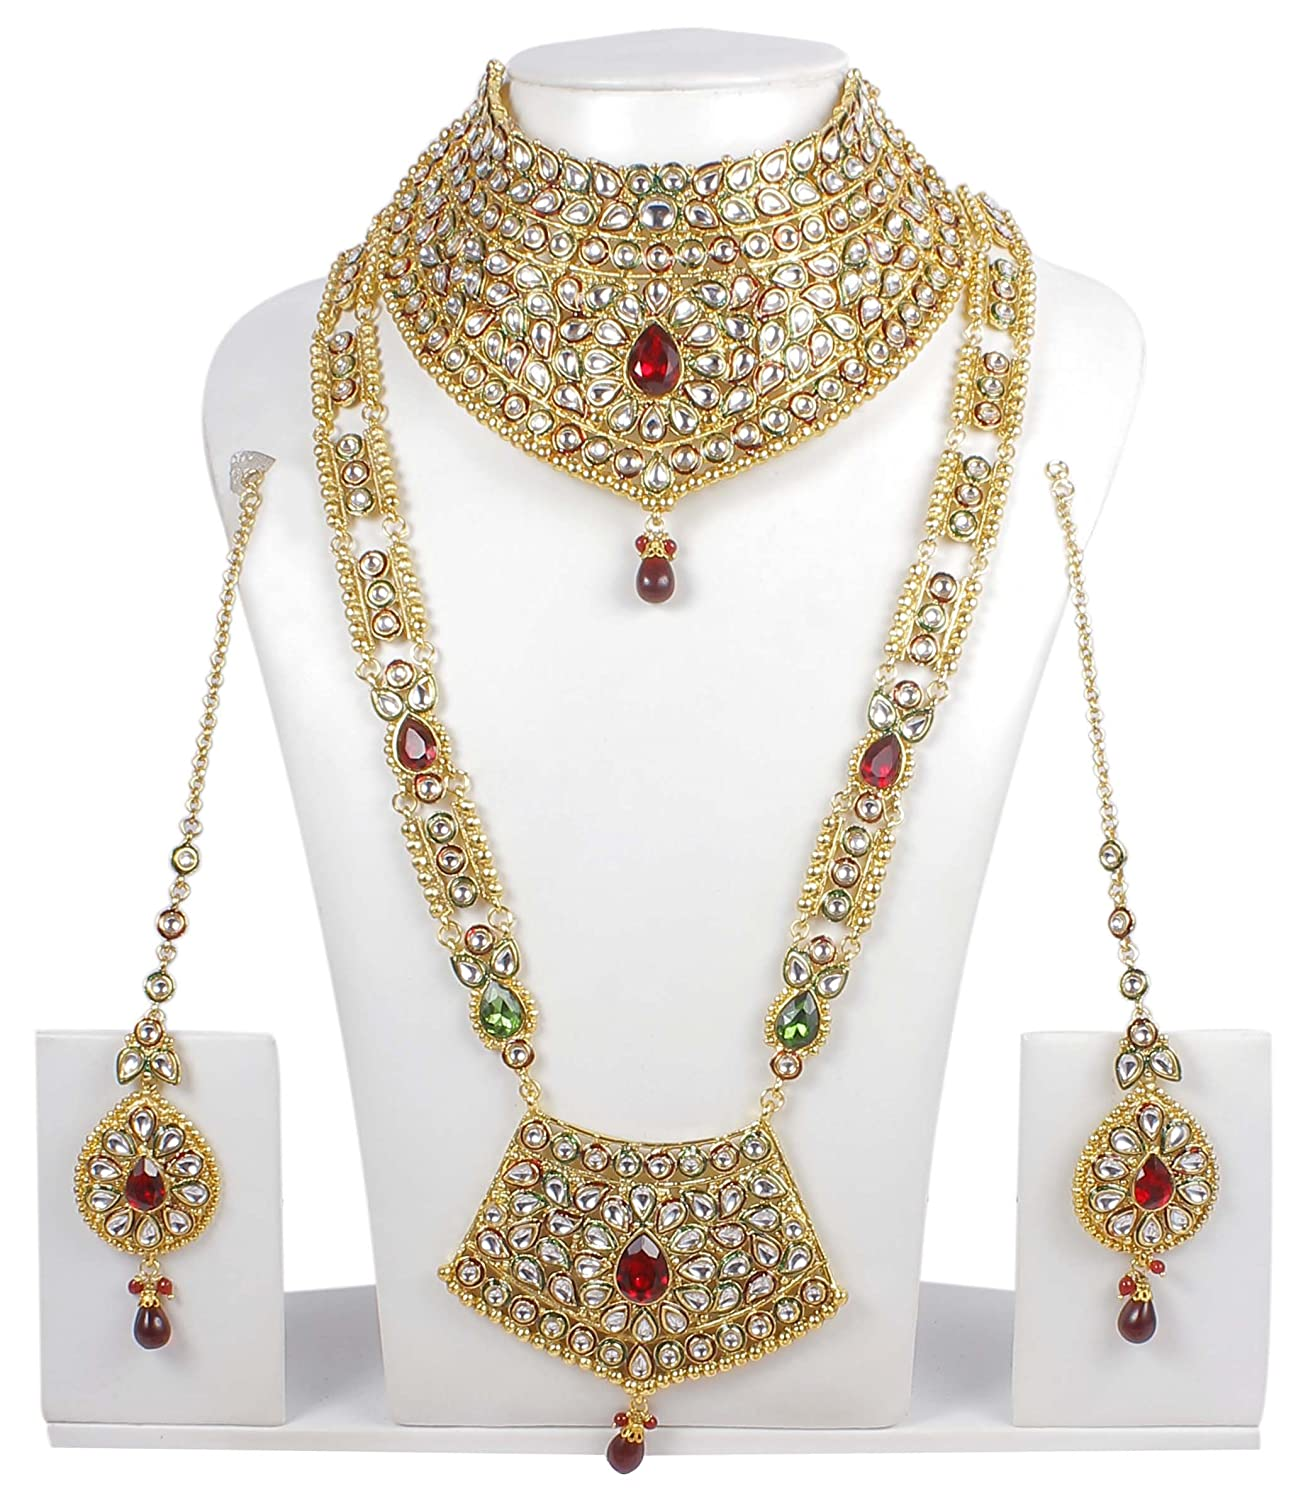 Amazon.com MUCHMORE Ethnic Traditional Long Necklace Ethnic Indian Bridal Jewelry Bollywood Earrings Gold Plated Set Jewelry  sc 1 st  Amazon.com & Amazon.com: MUCHMORE Ethnic Traditional Long Necklace Ethnic Indian ...